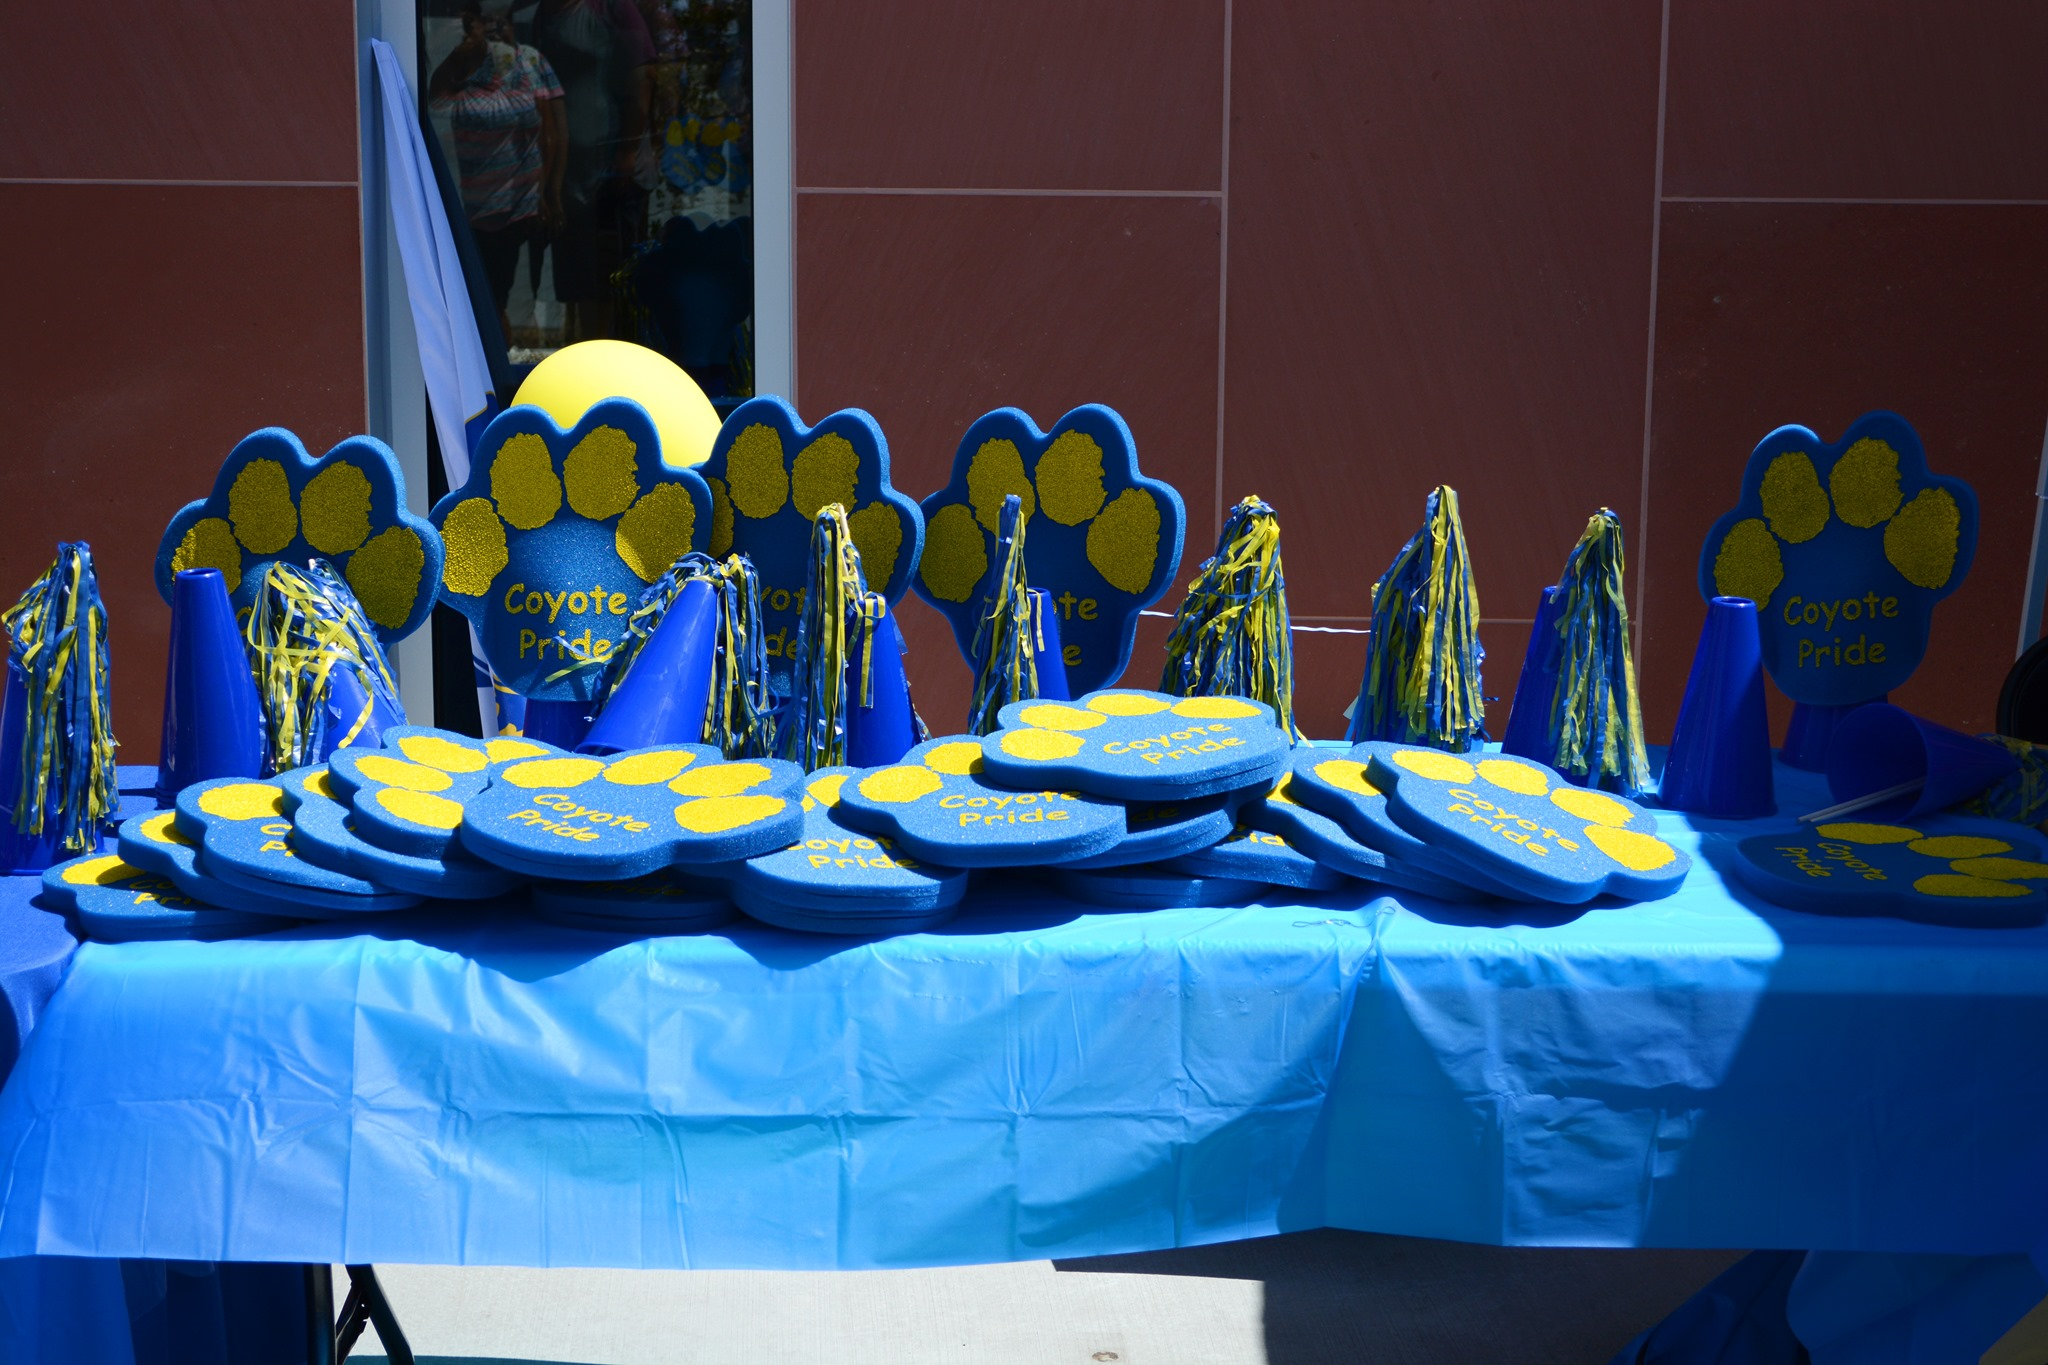 Table of Coyote Pride Foam Paws